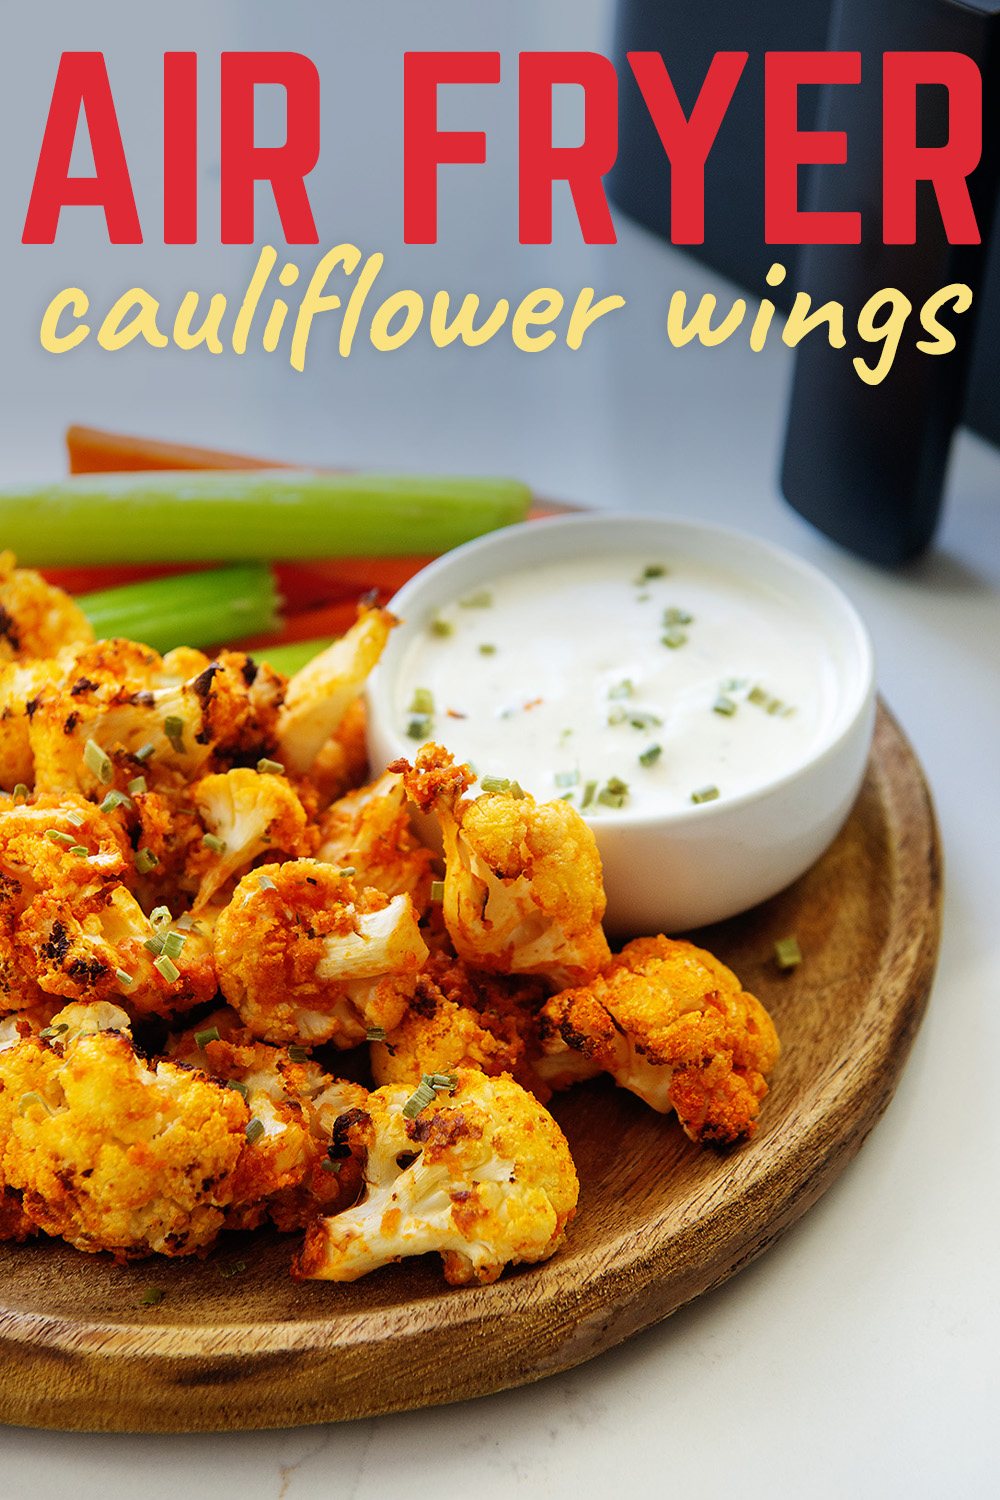 Try out these cauliflower wings in ranch or blue cheese for a great appetizer or even an entire dinner!